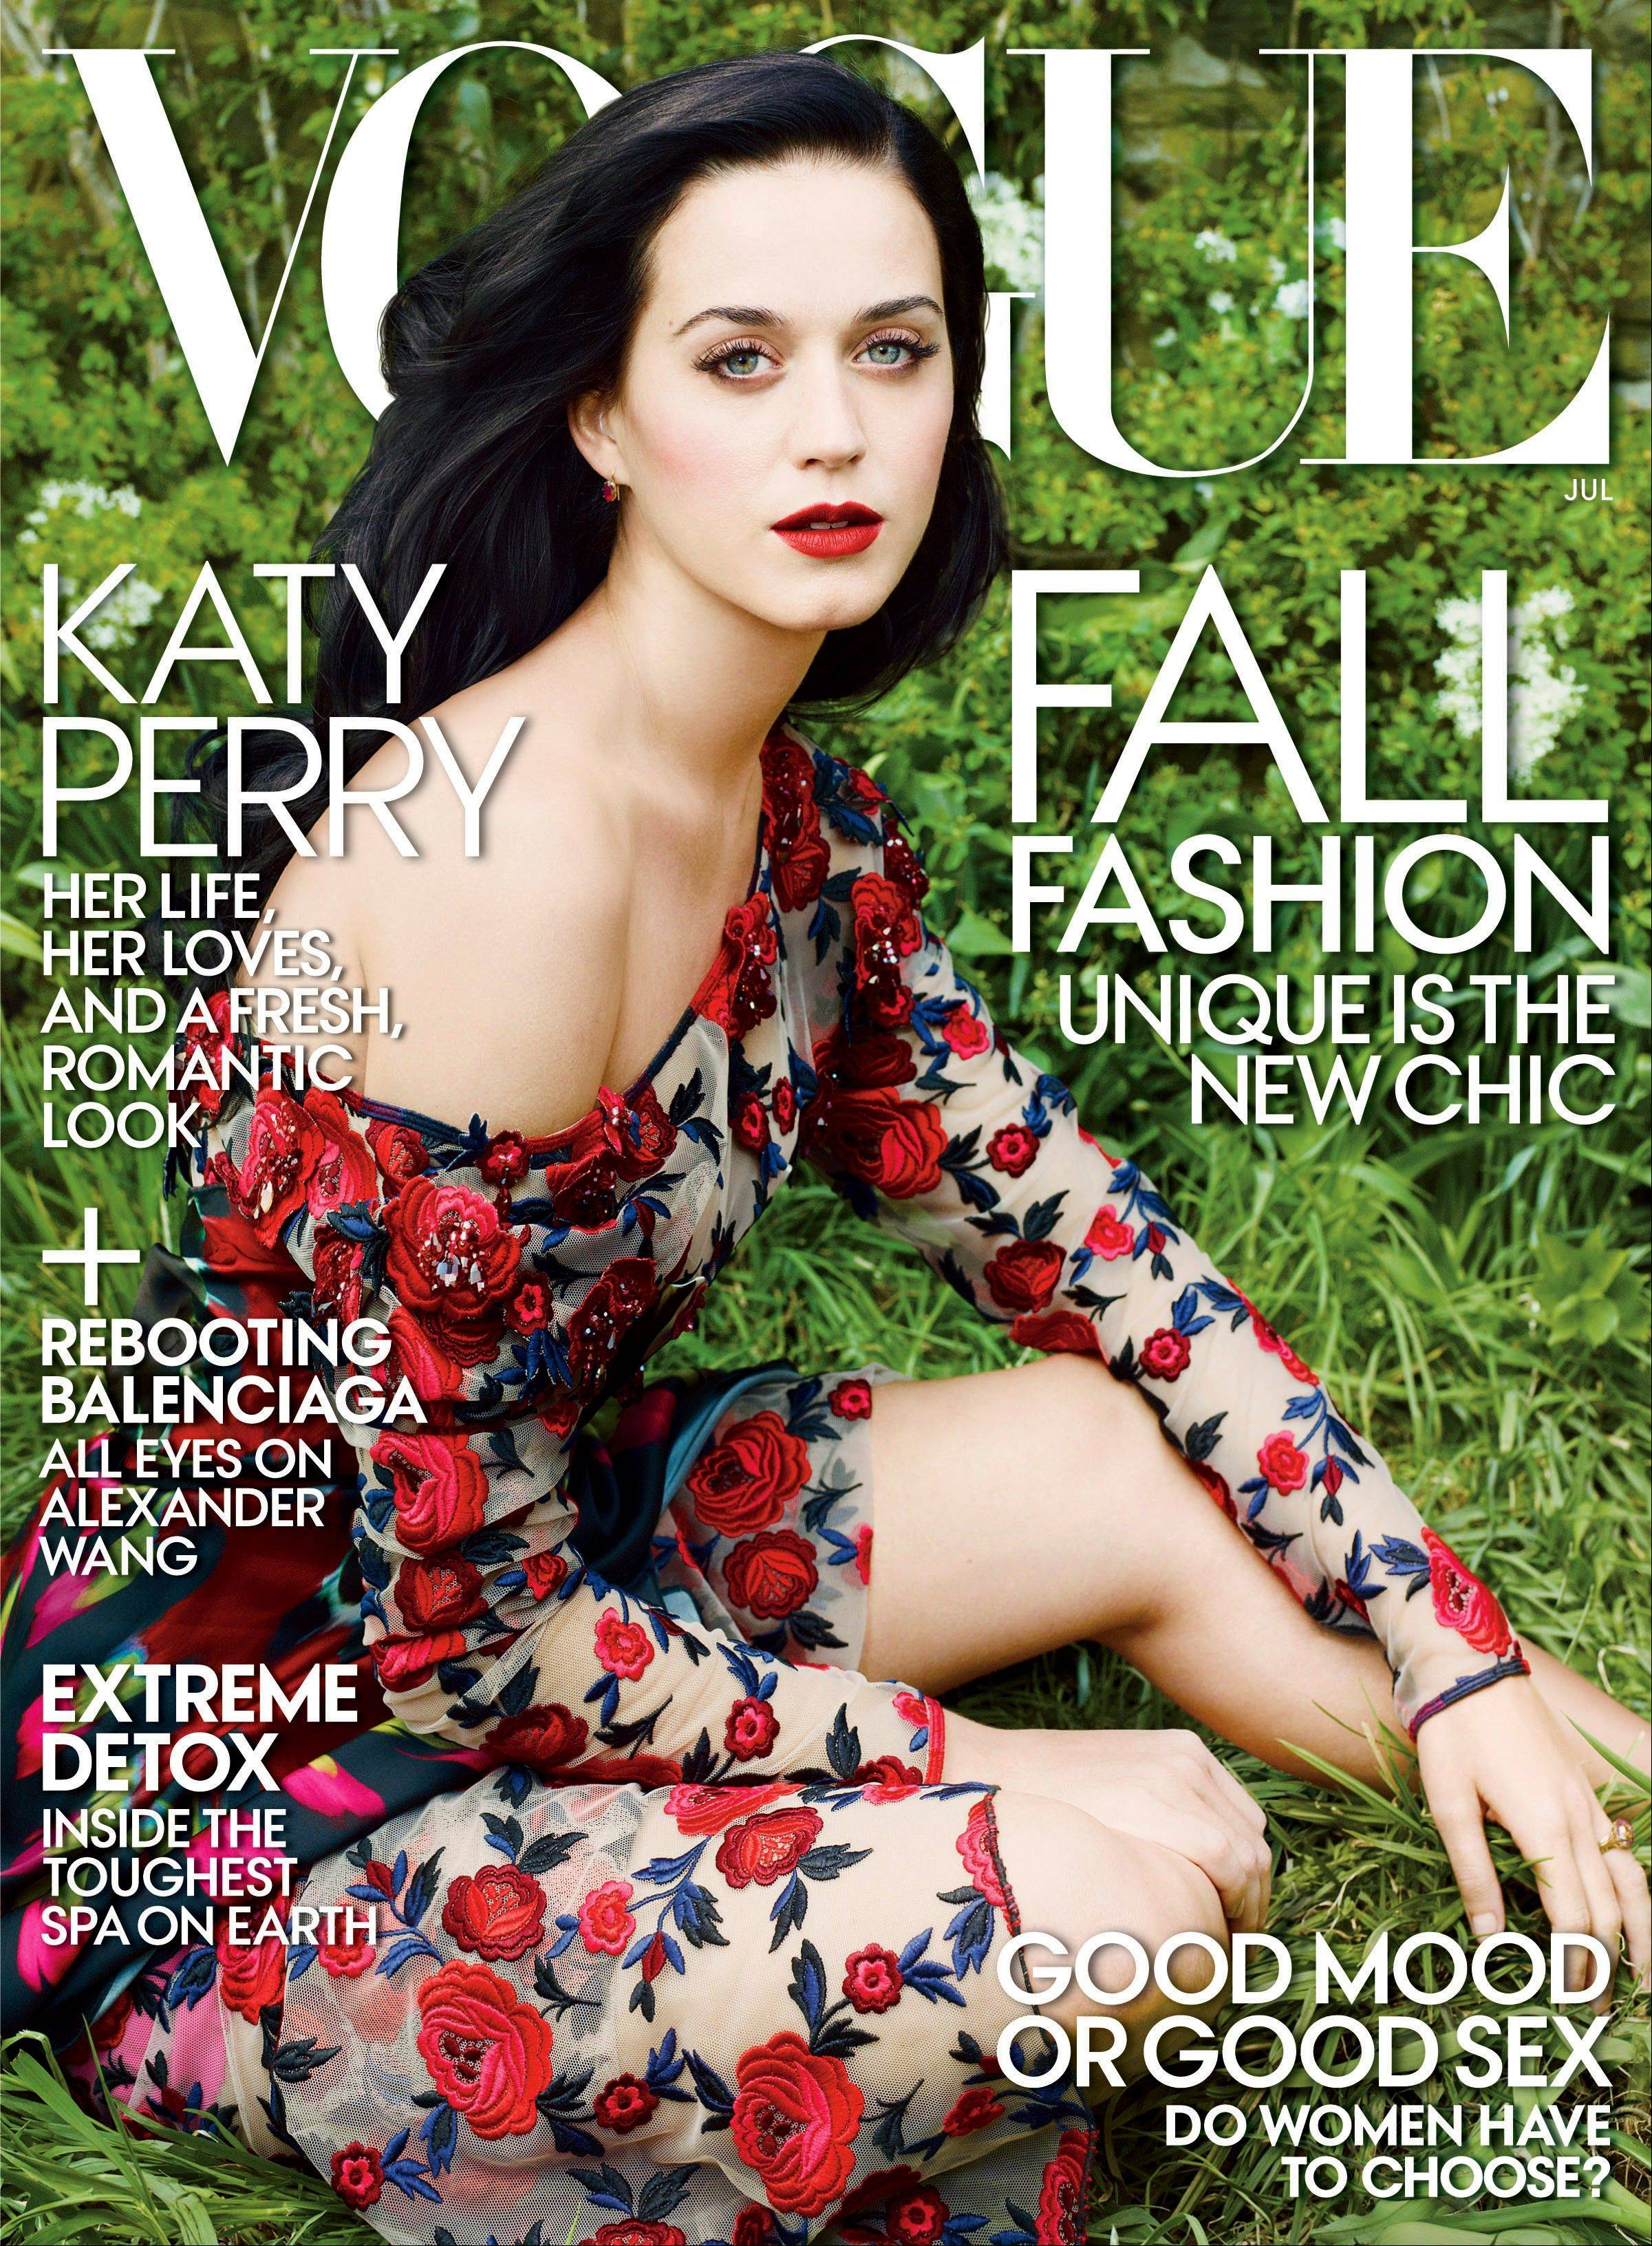 Singer Katy Perry on the July 2013 cover of Vogue magazine.